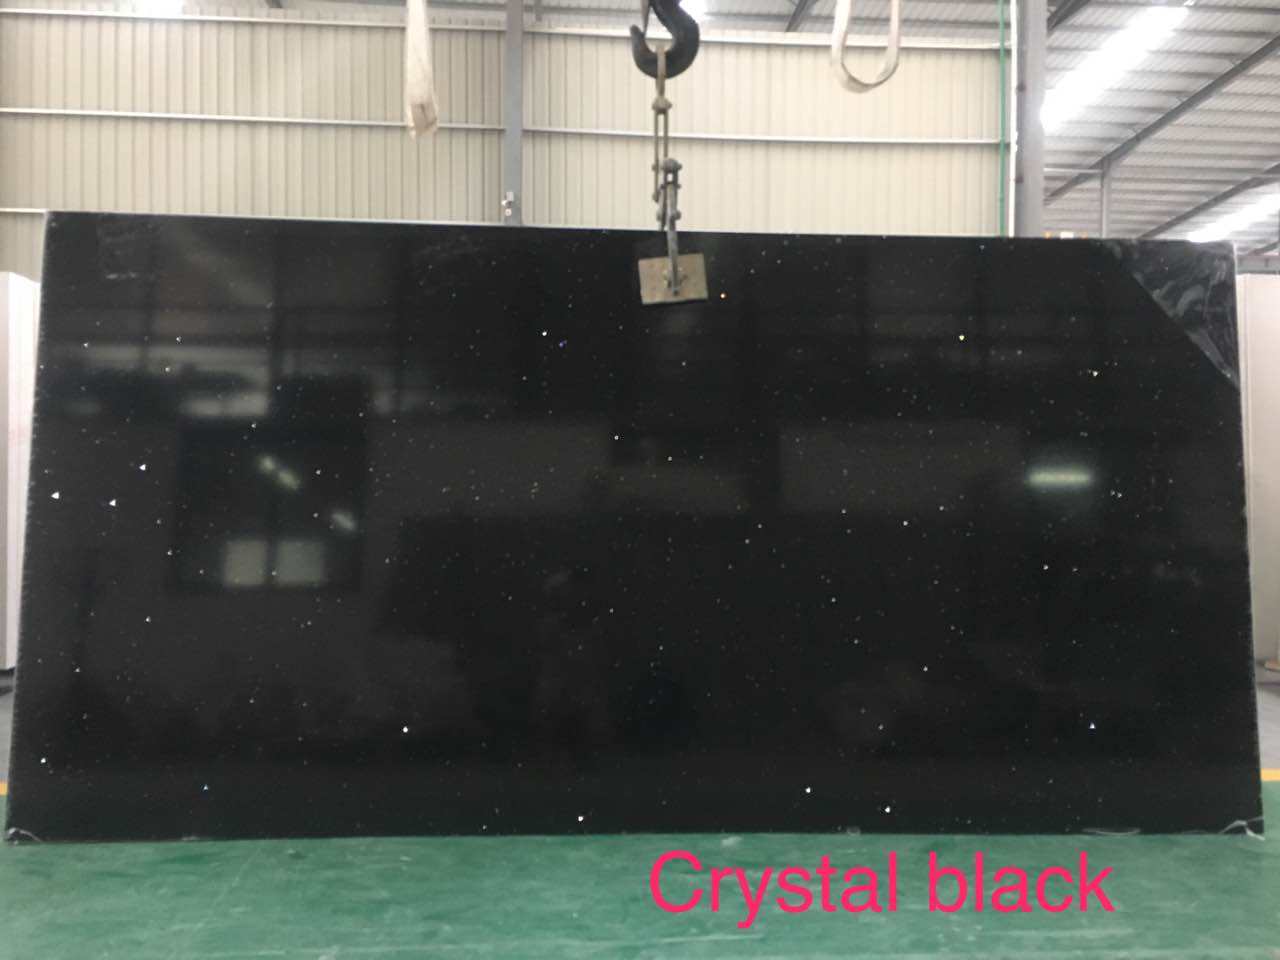 Crystal black quartz slab